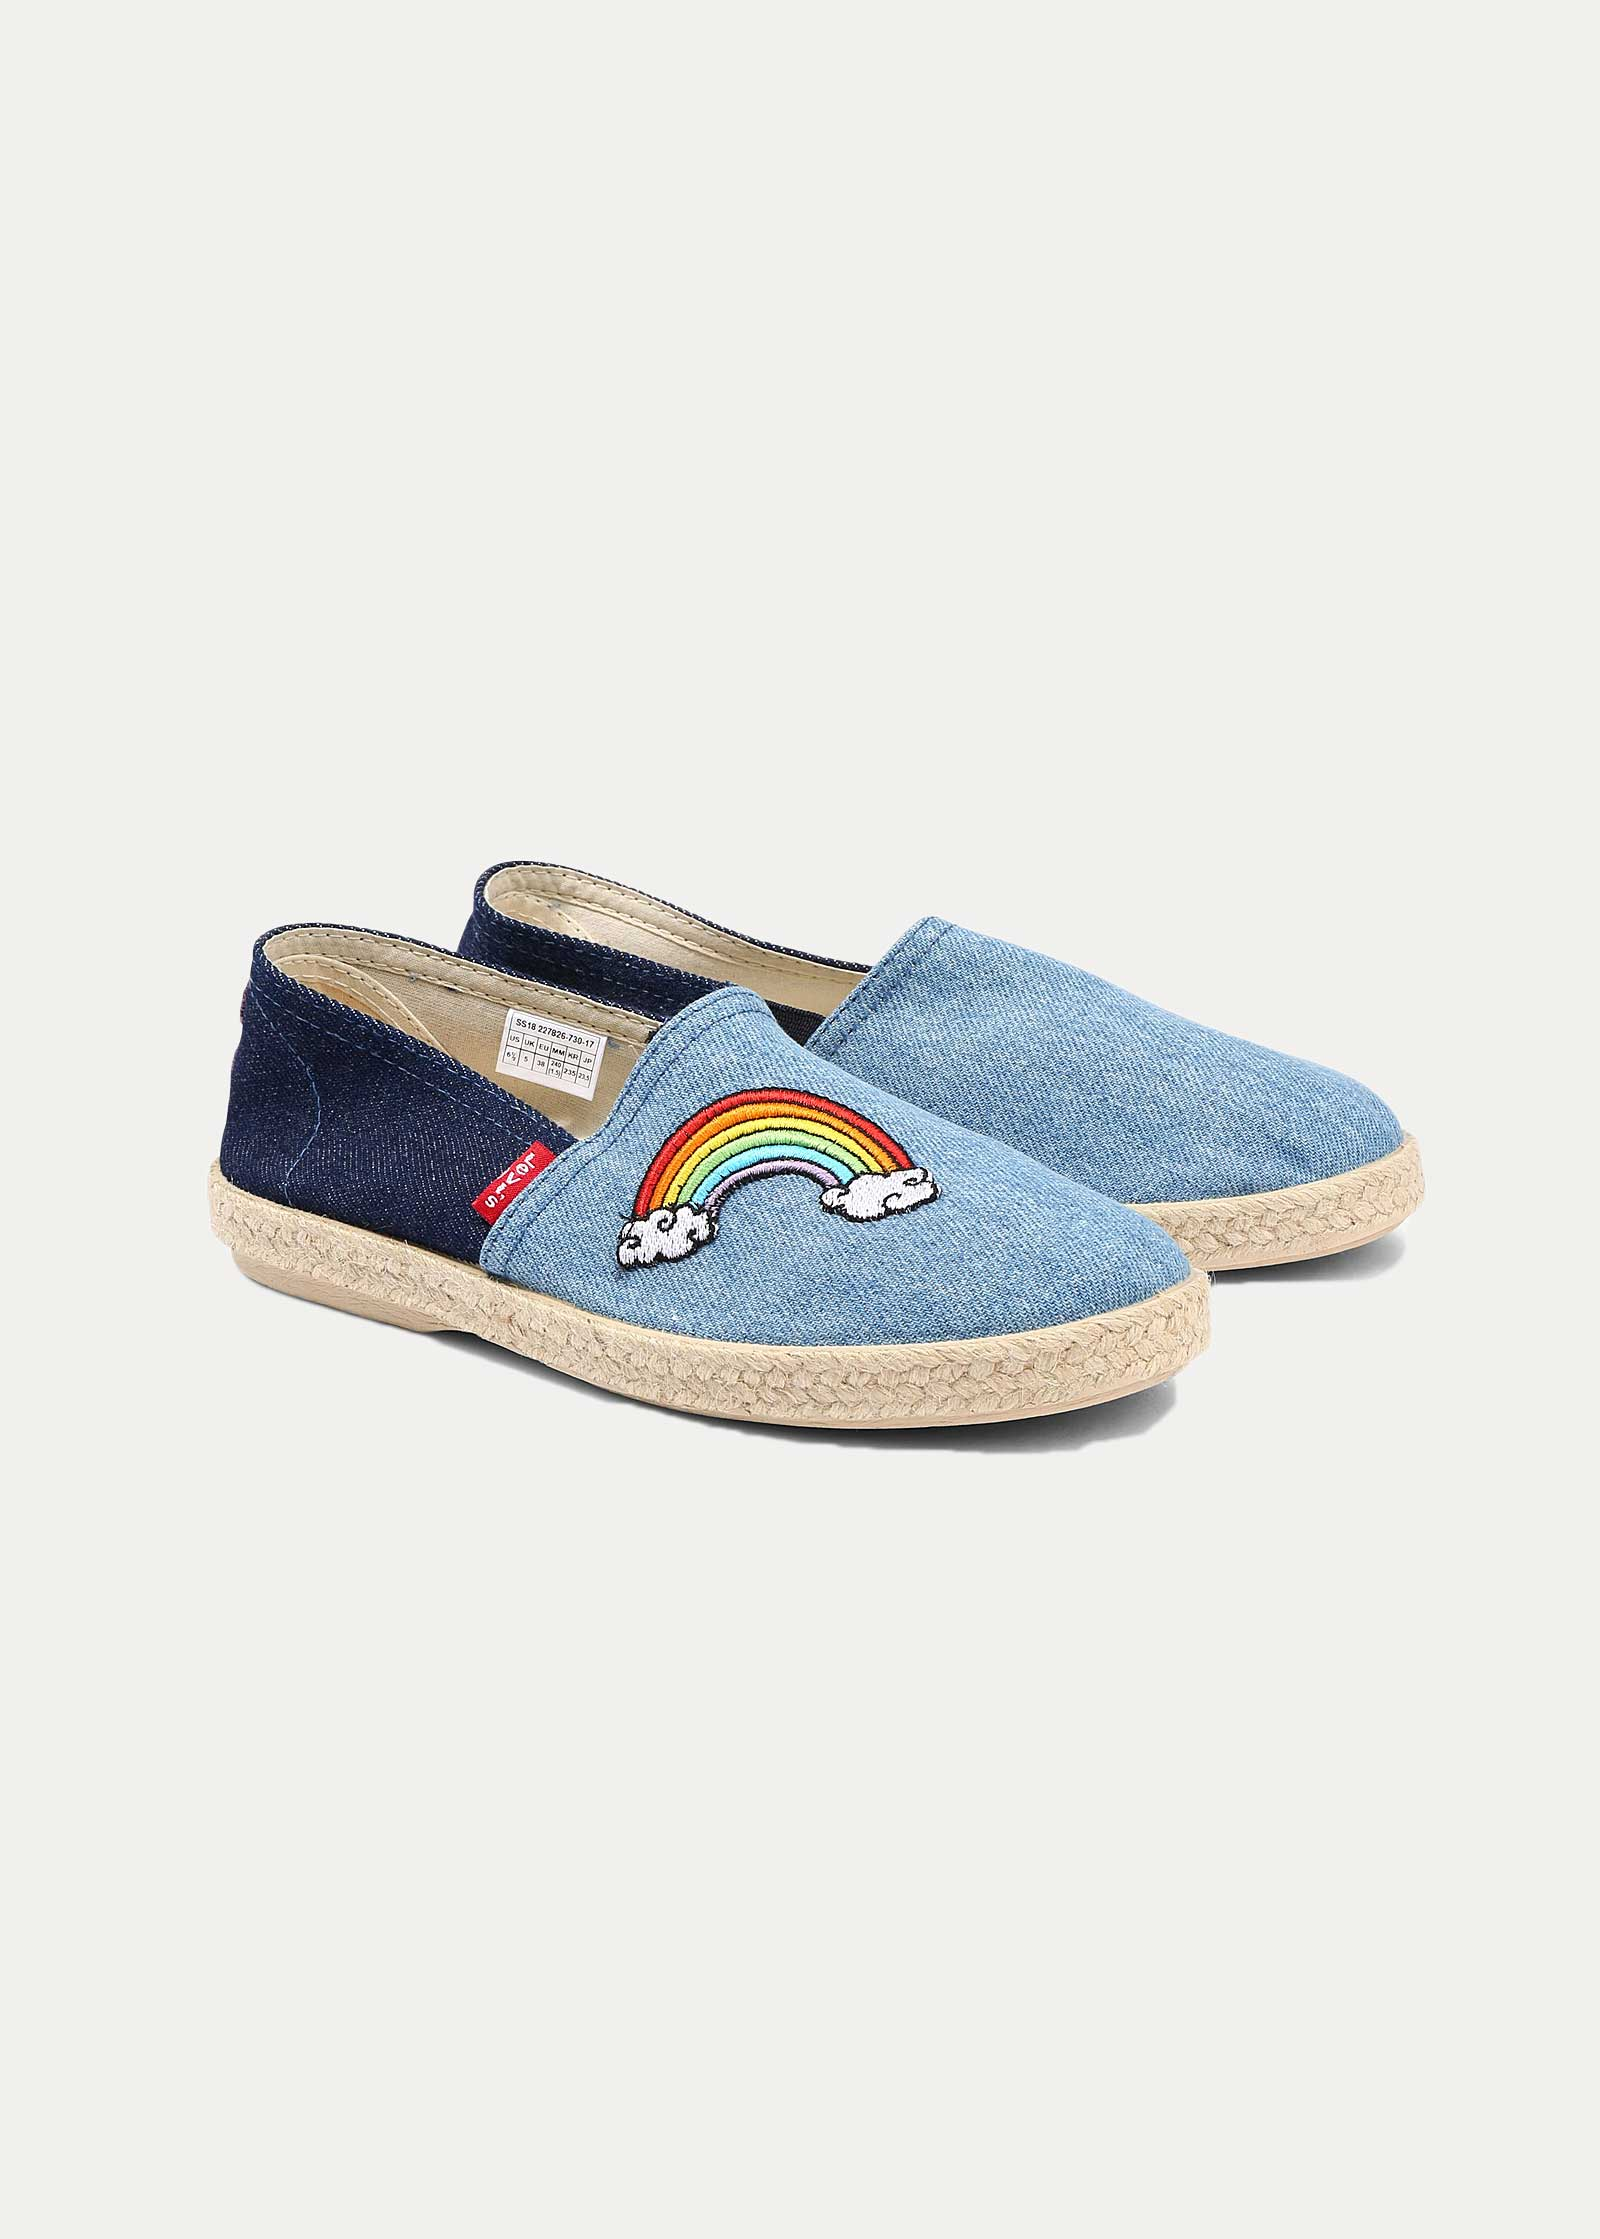 Levi's® Rosadale Slip On Espadrille - Blue - elements